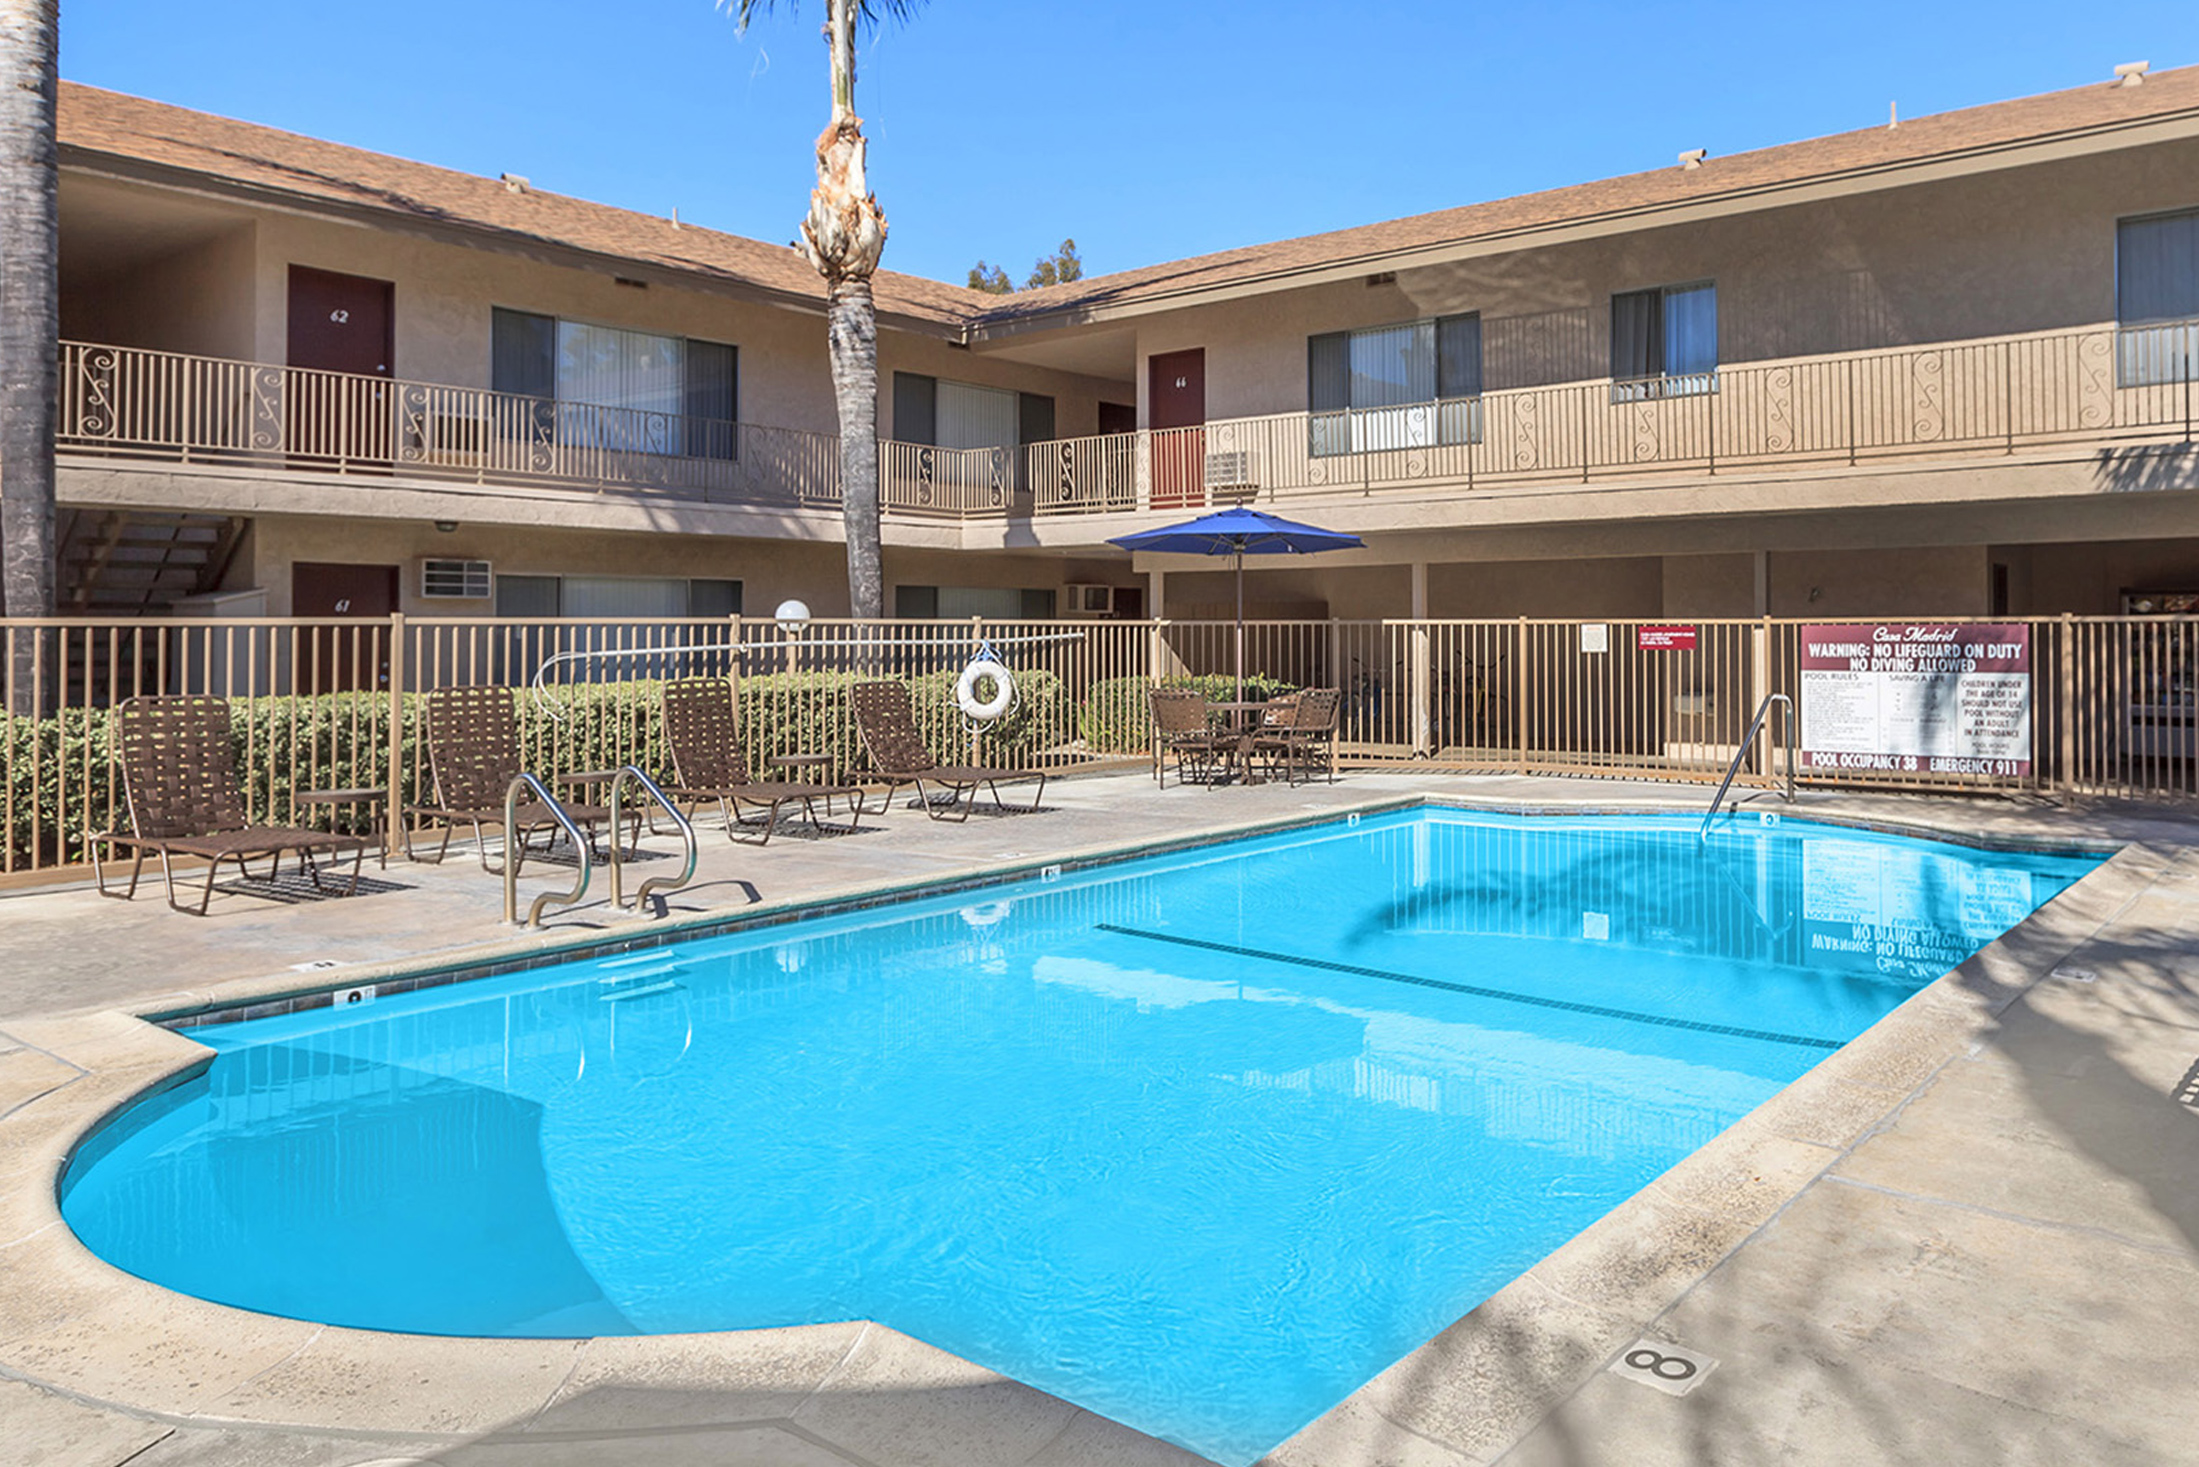 Casa Madrid Apartment Homes - Apartments in La Habra, CA